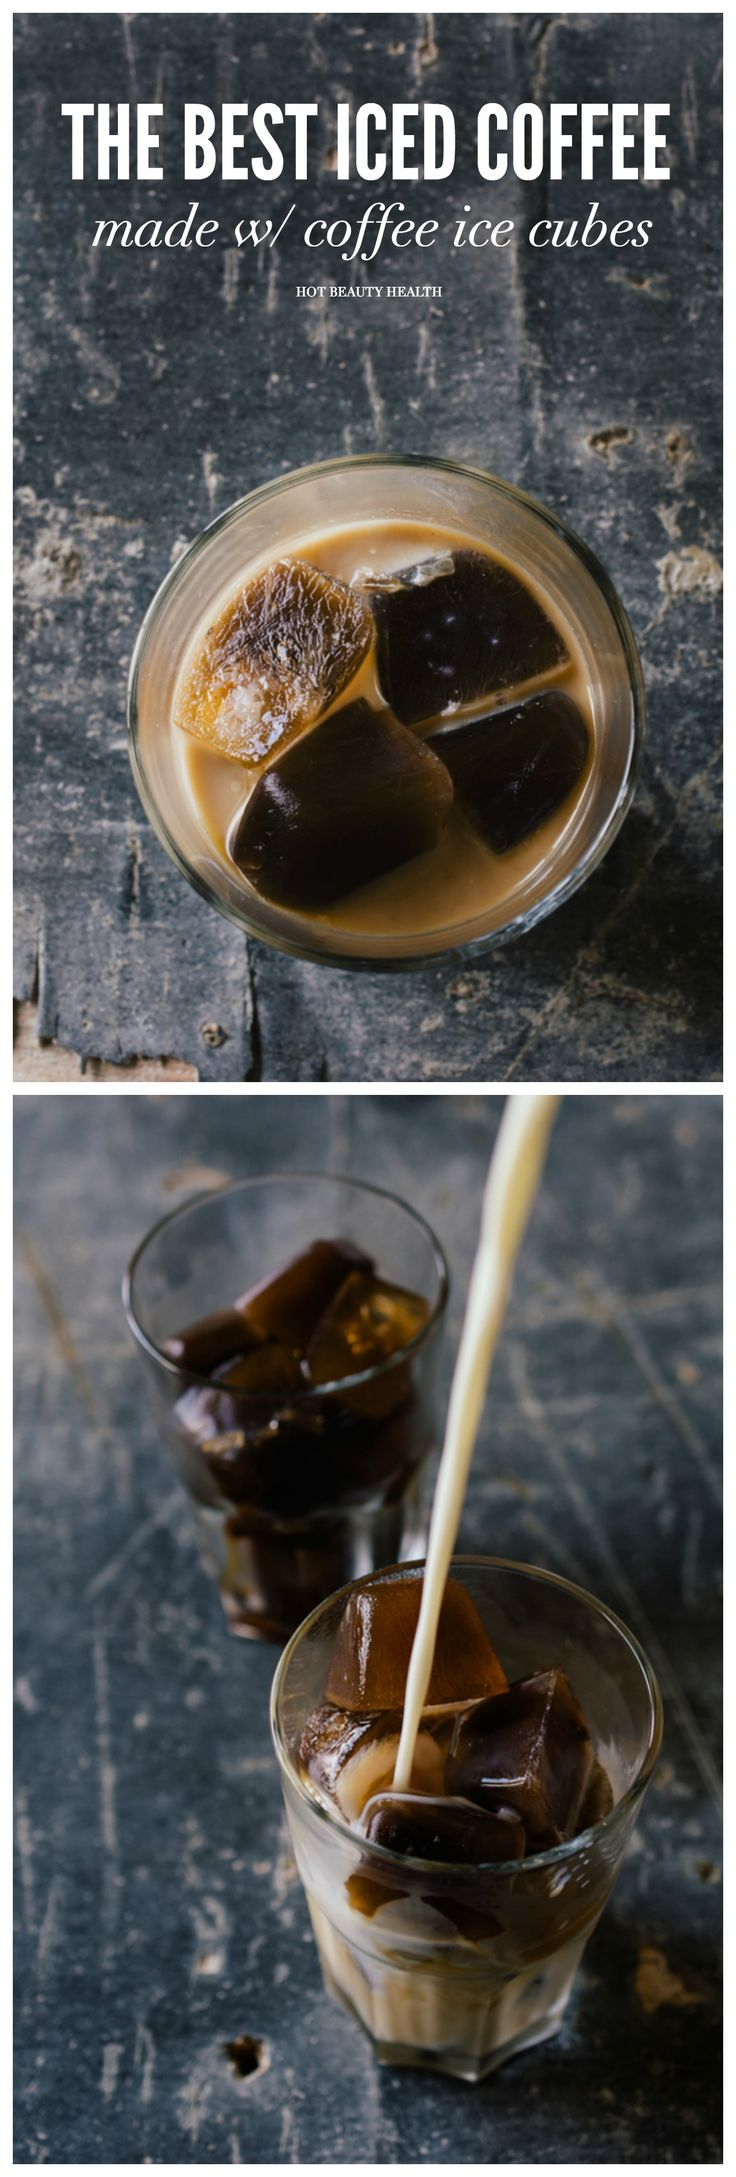 The best iced coffee recipe made with coffee ice cubes. It's the easiest way to make your favorite iced coffee drink at home.